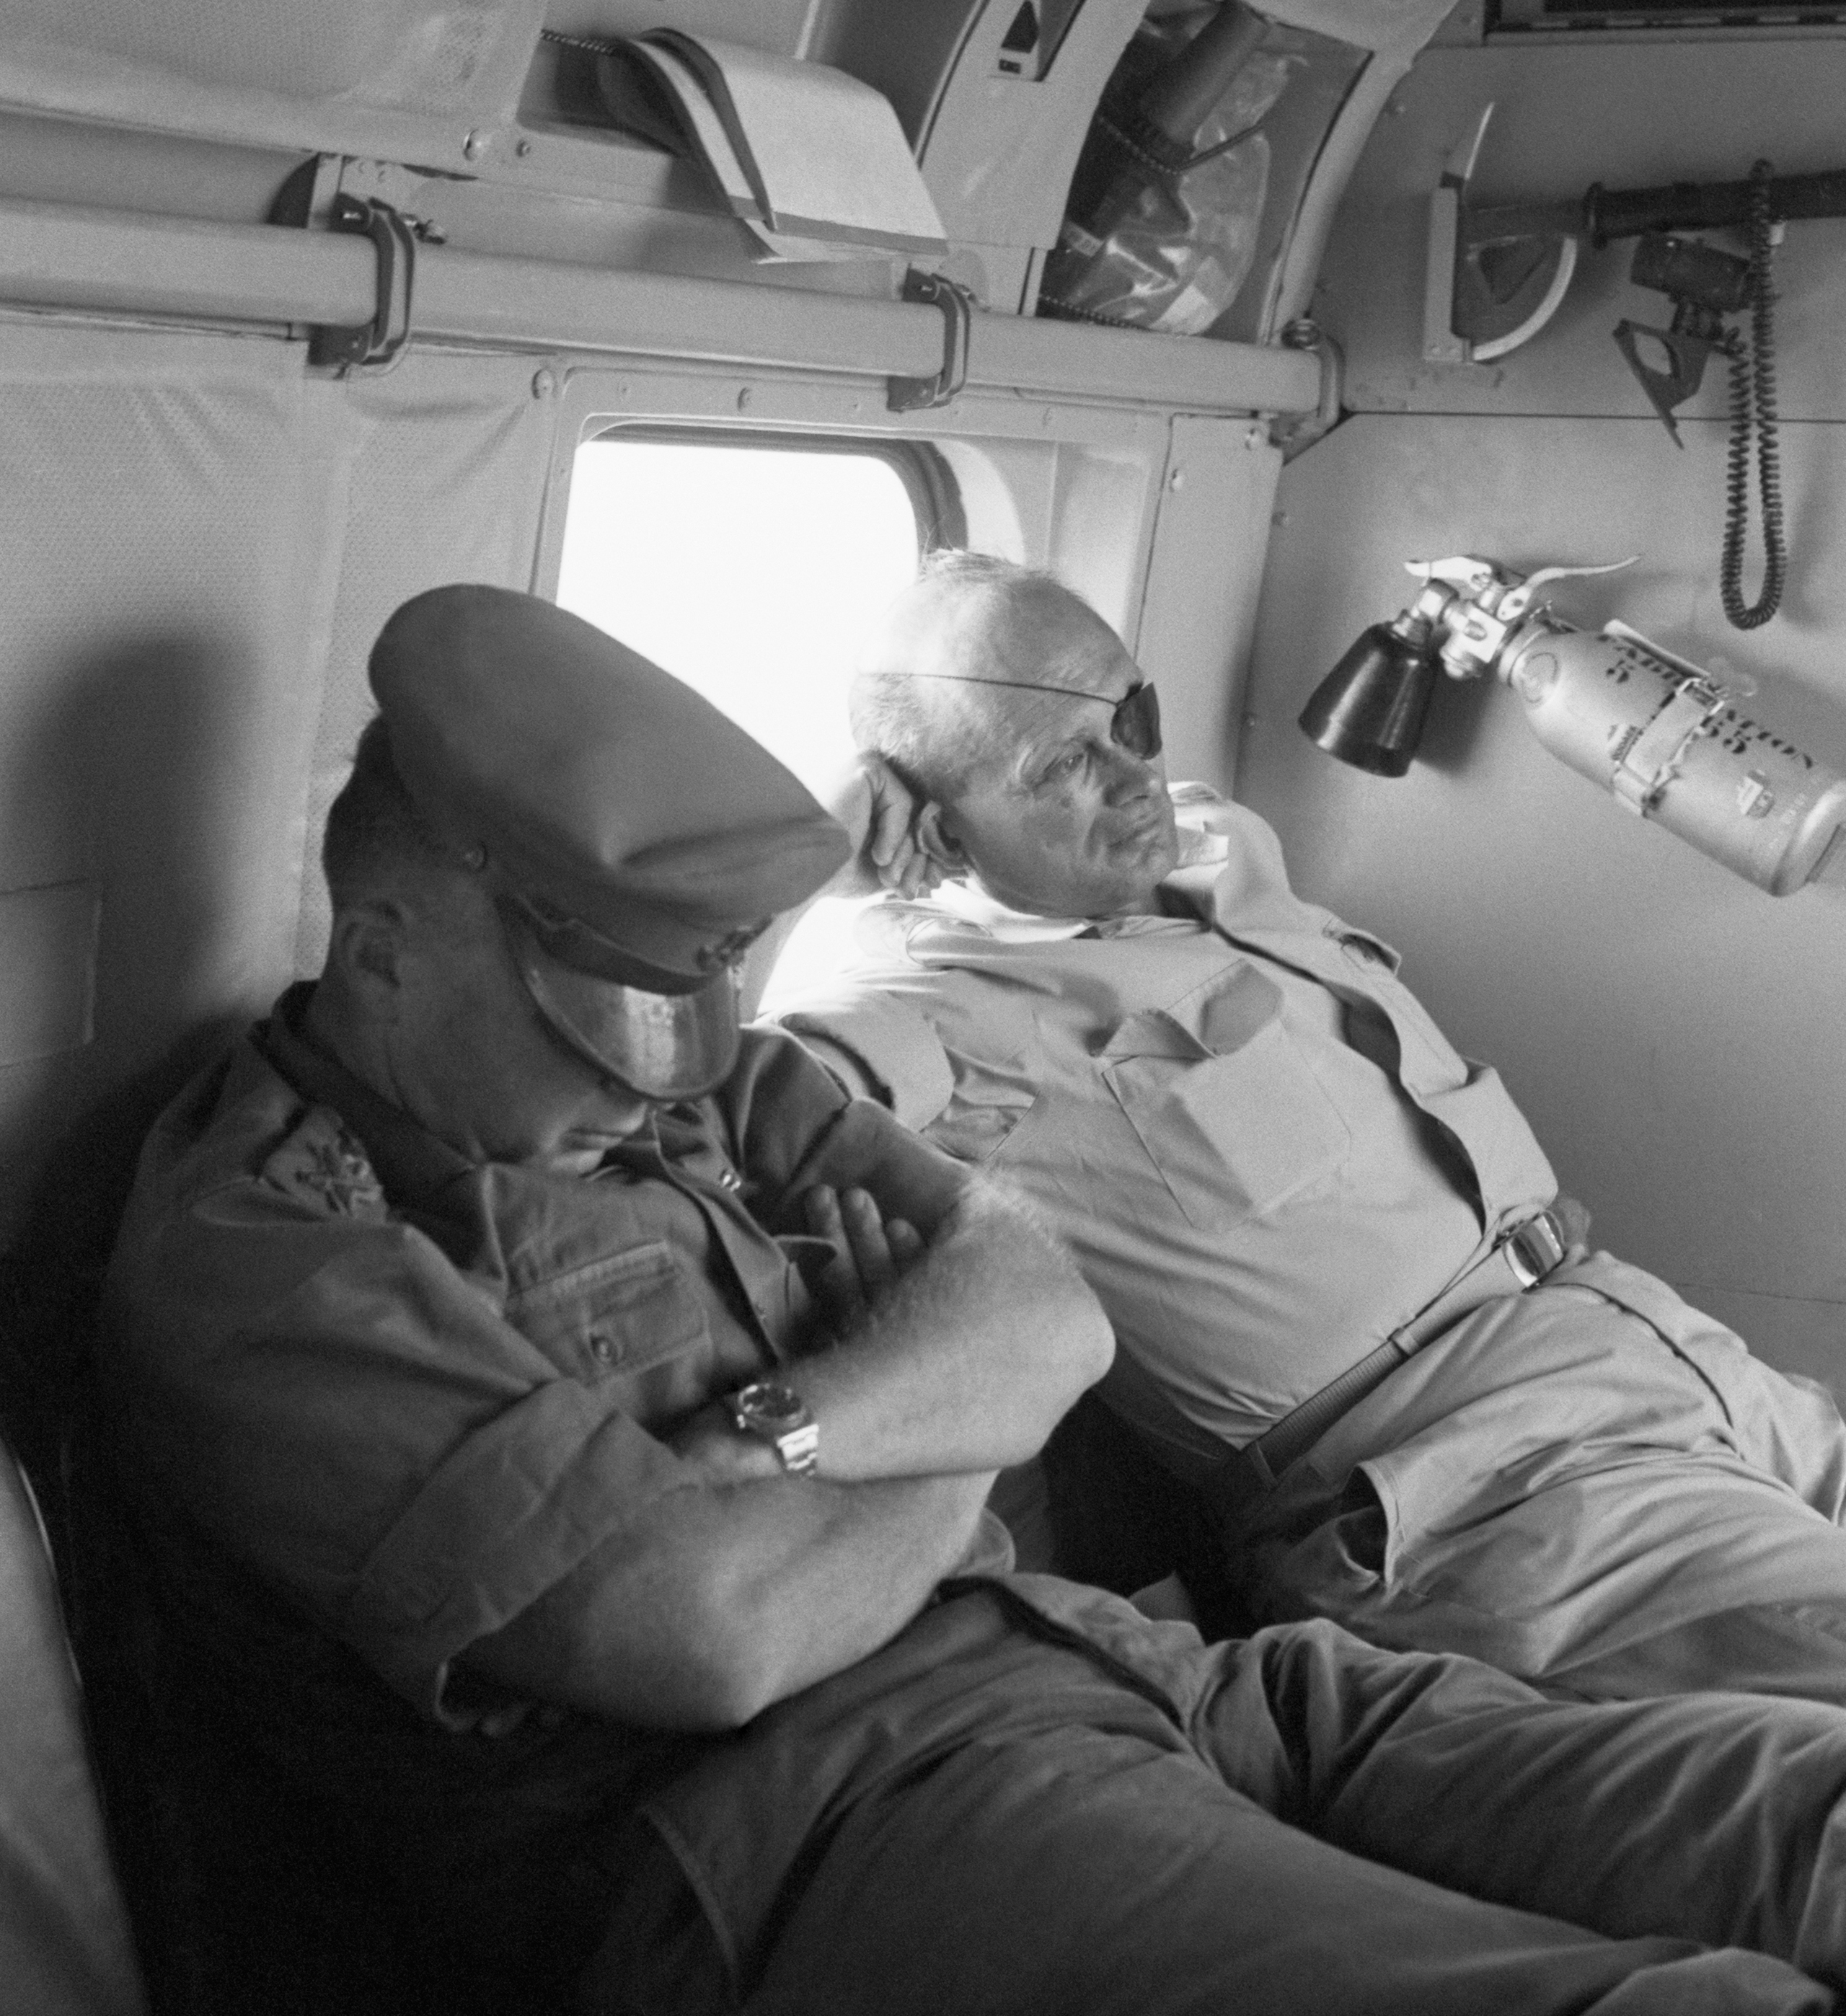 Defense Minister Moshe Dayan and Chief of Staff Yitzhak Rabin fly back from the battlefield on the day after the Six-Day War, 1967.